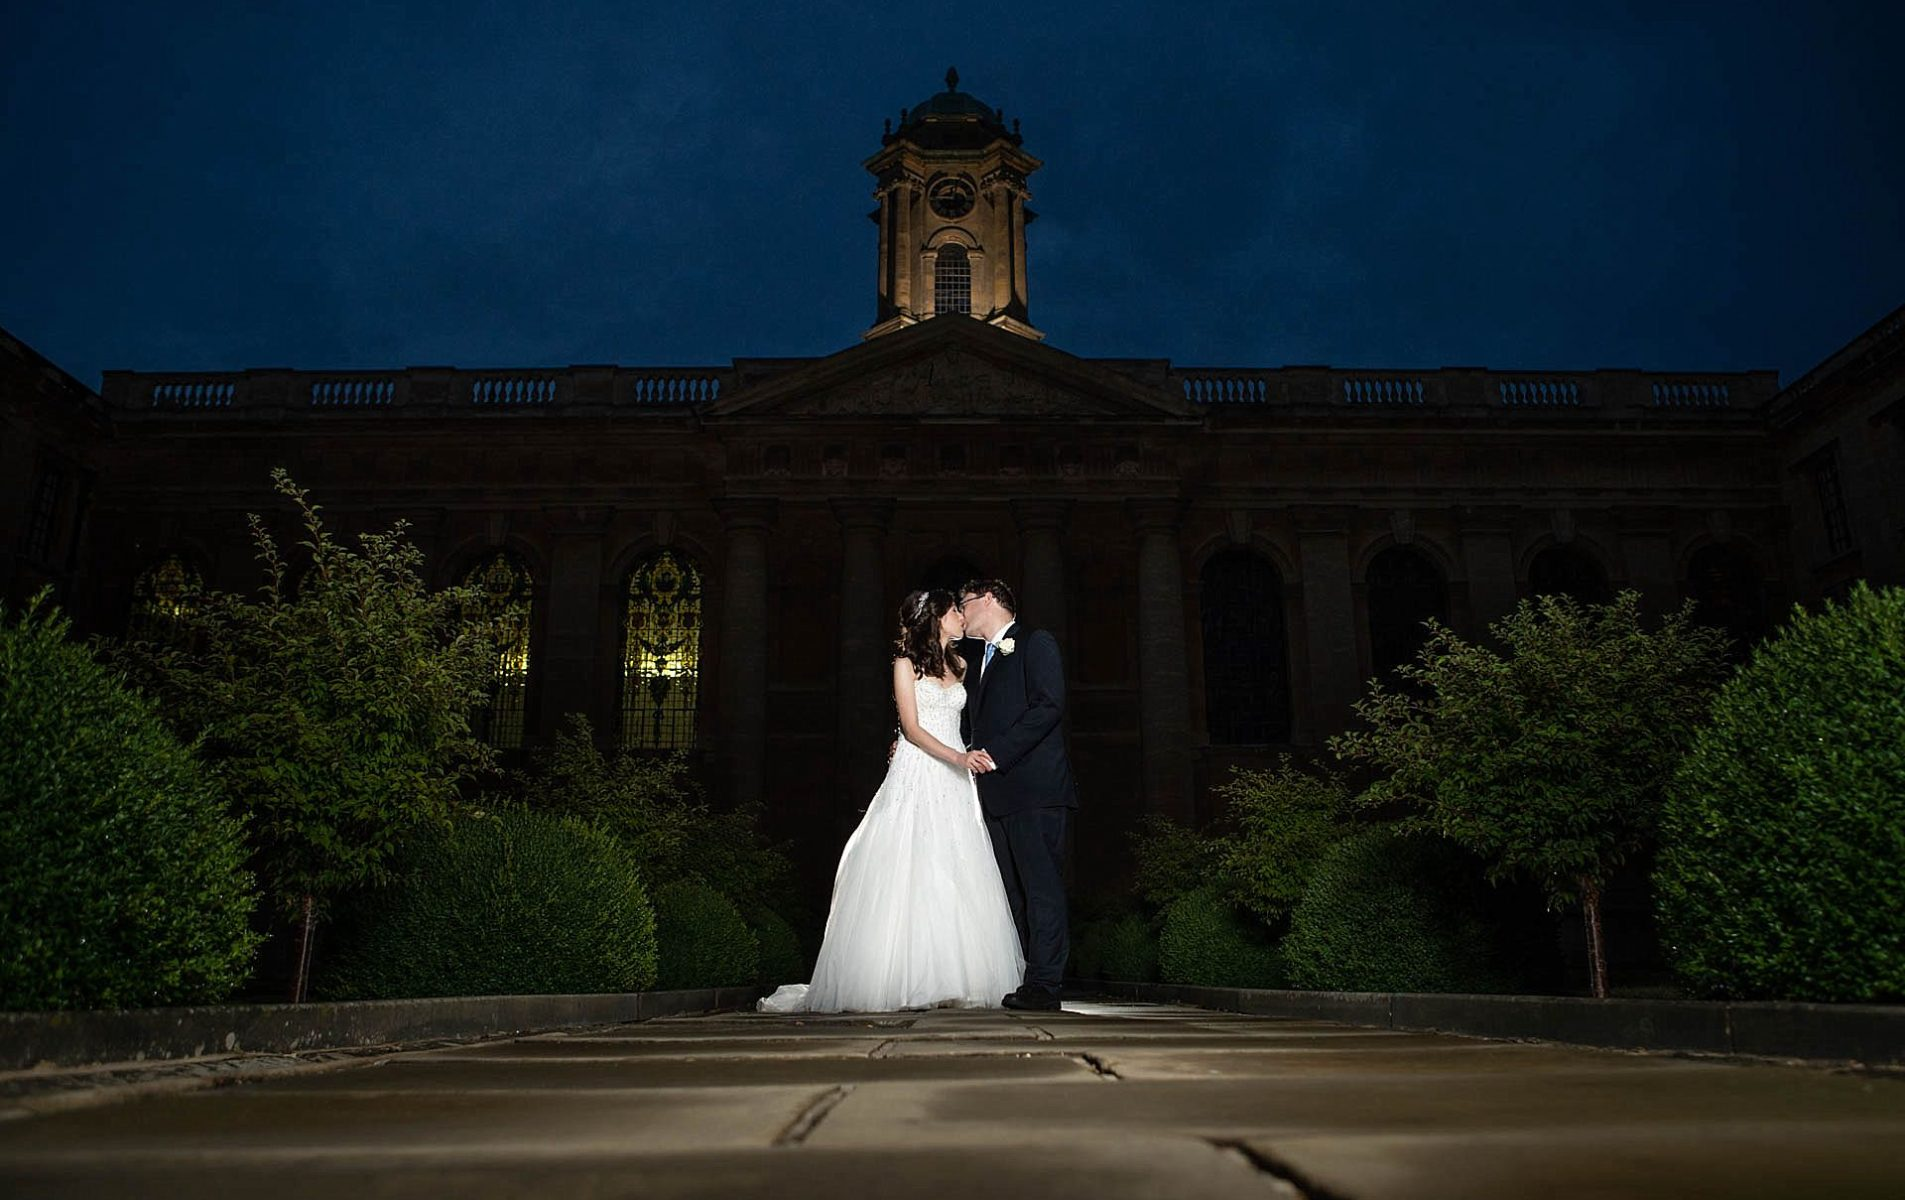 Queens College Wedding - Sophie and Roger